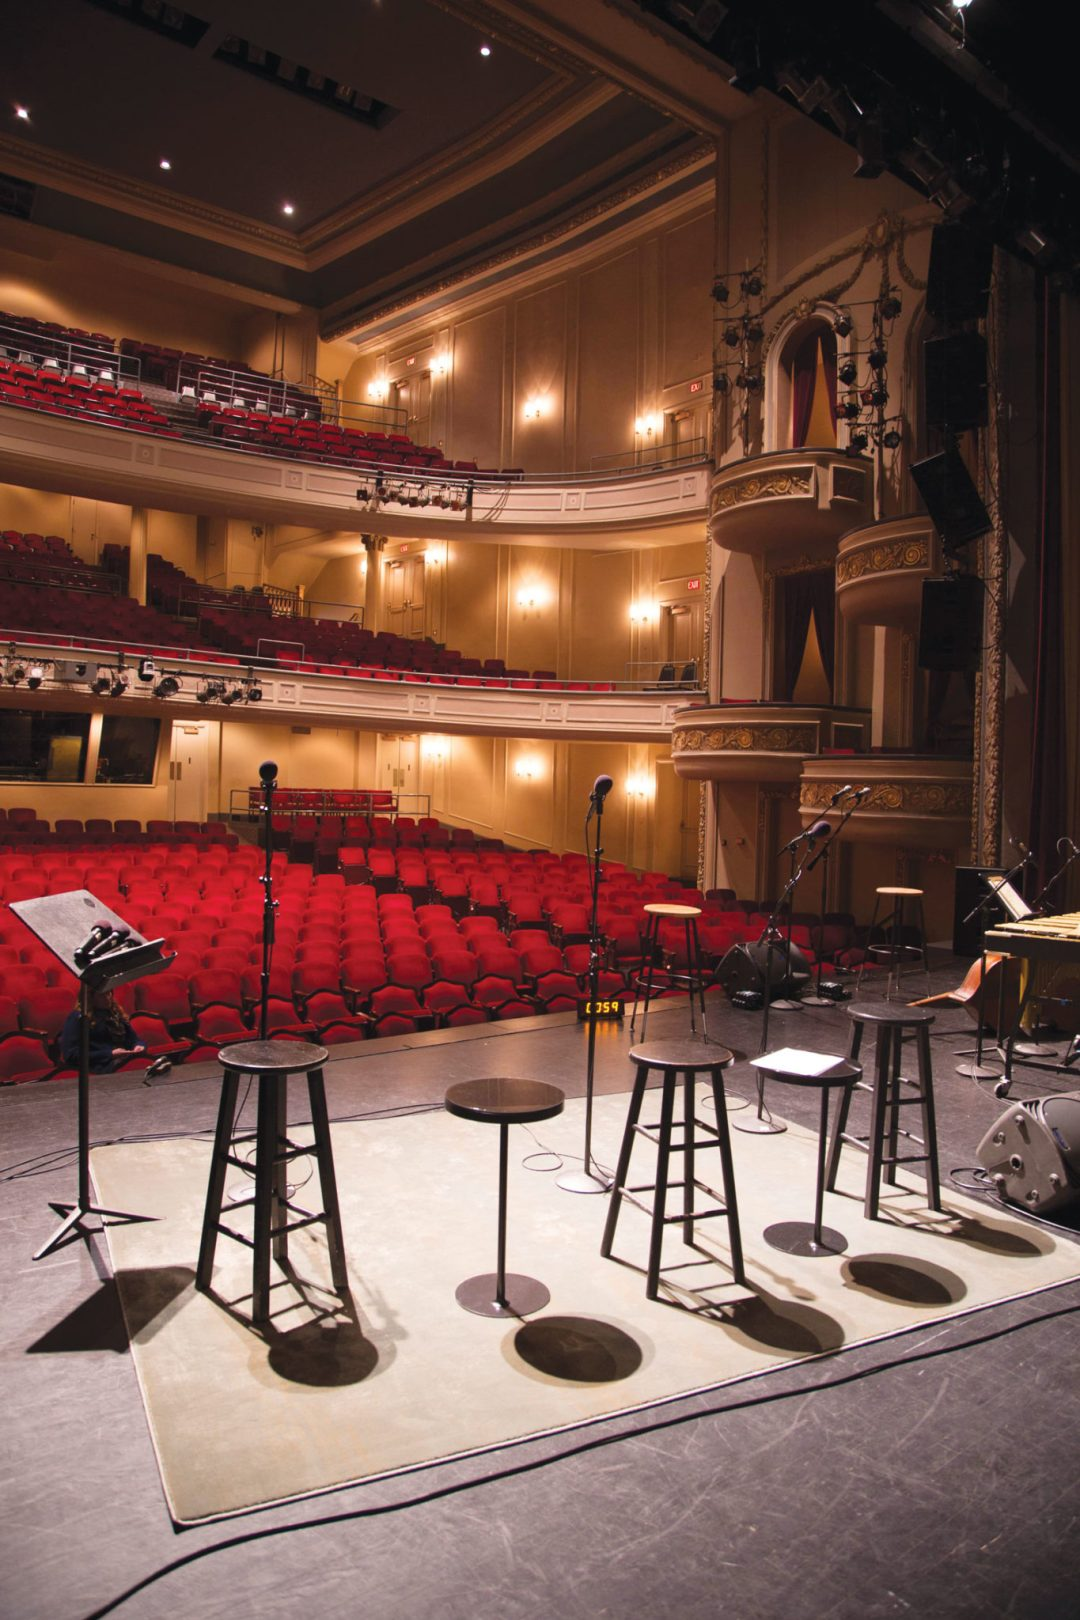 Fitzgerald Theater Stage. Image by Todd Buchanan